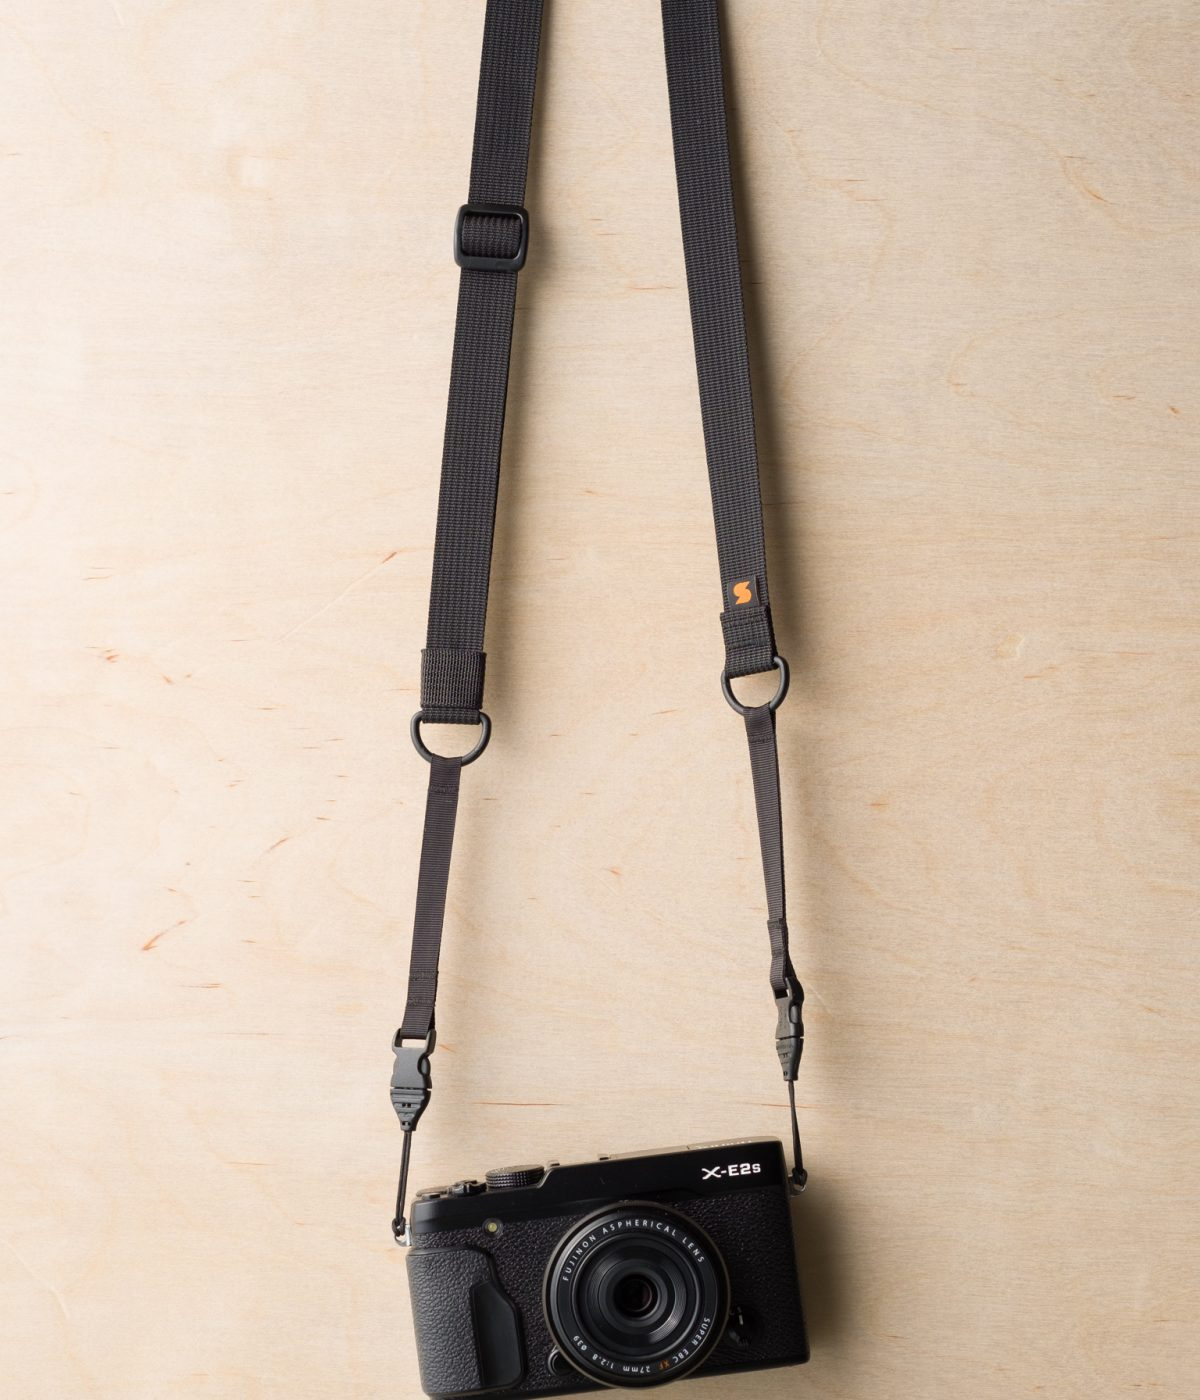 M1ultralight Camera Strap on Fuji X-E2s in Black